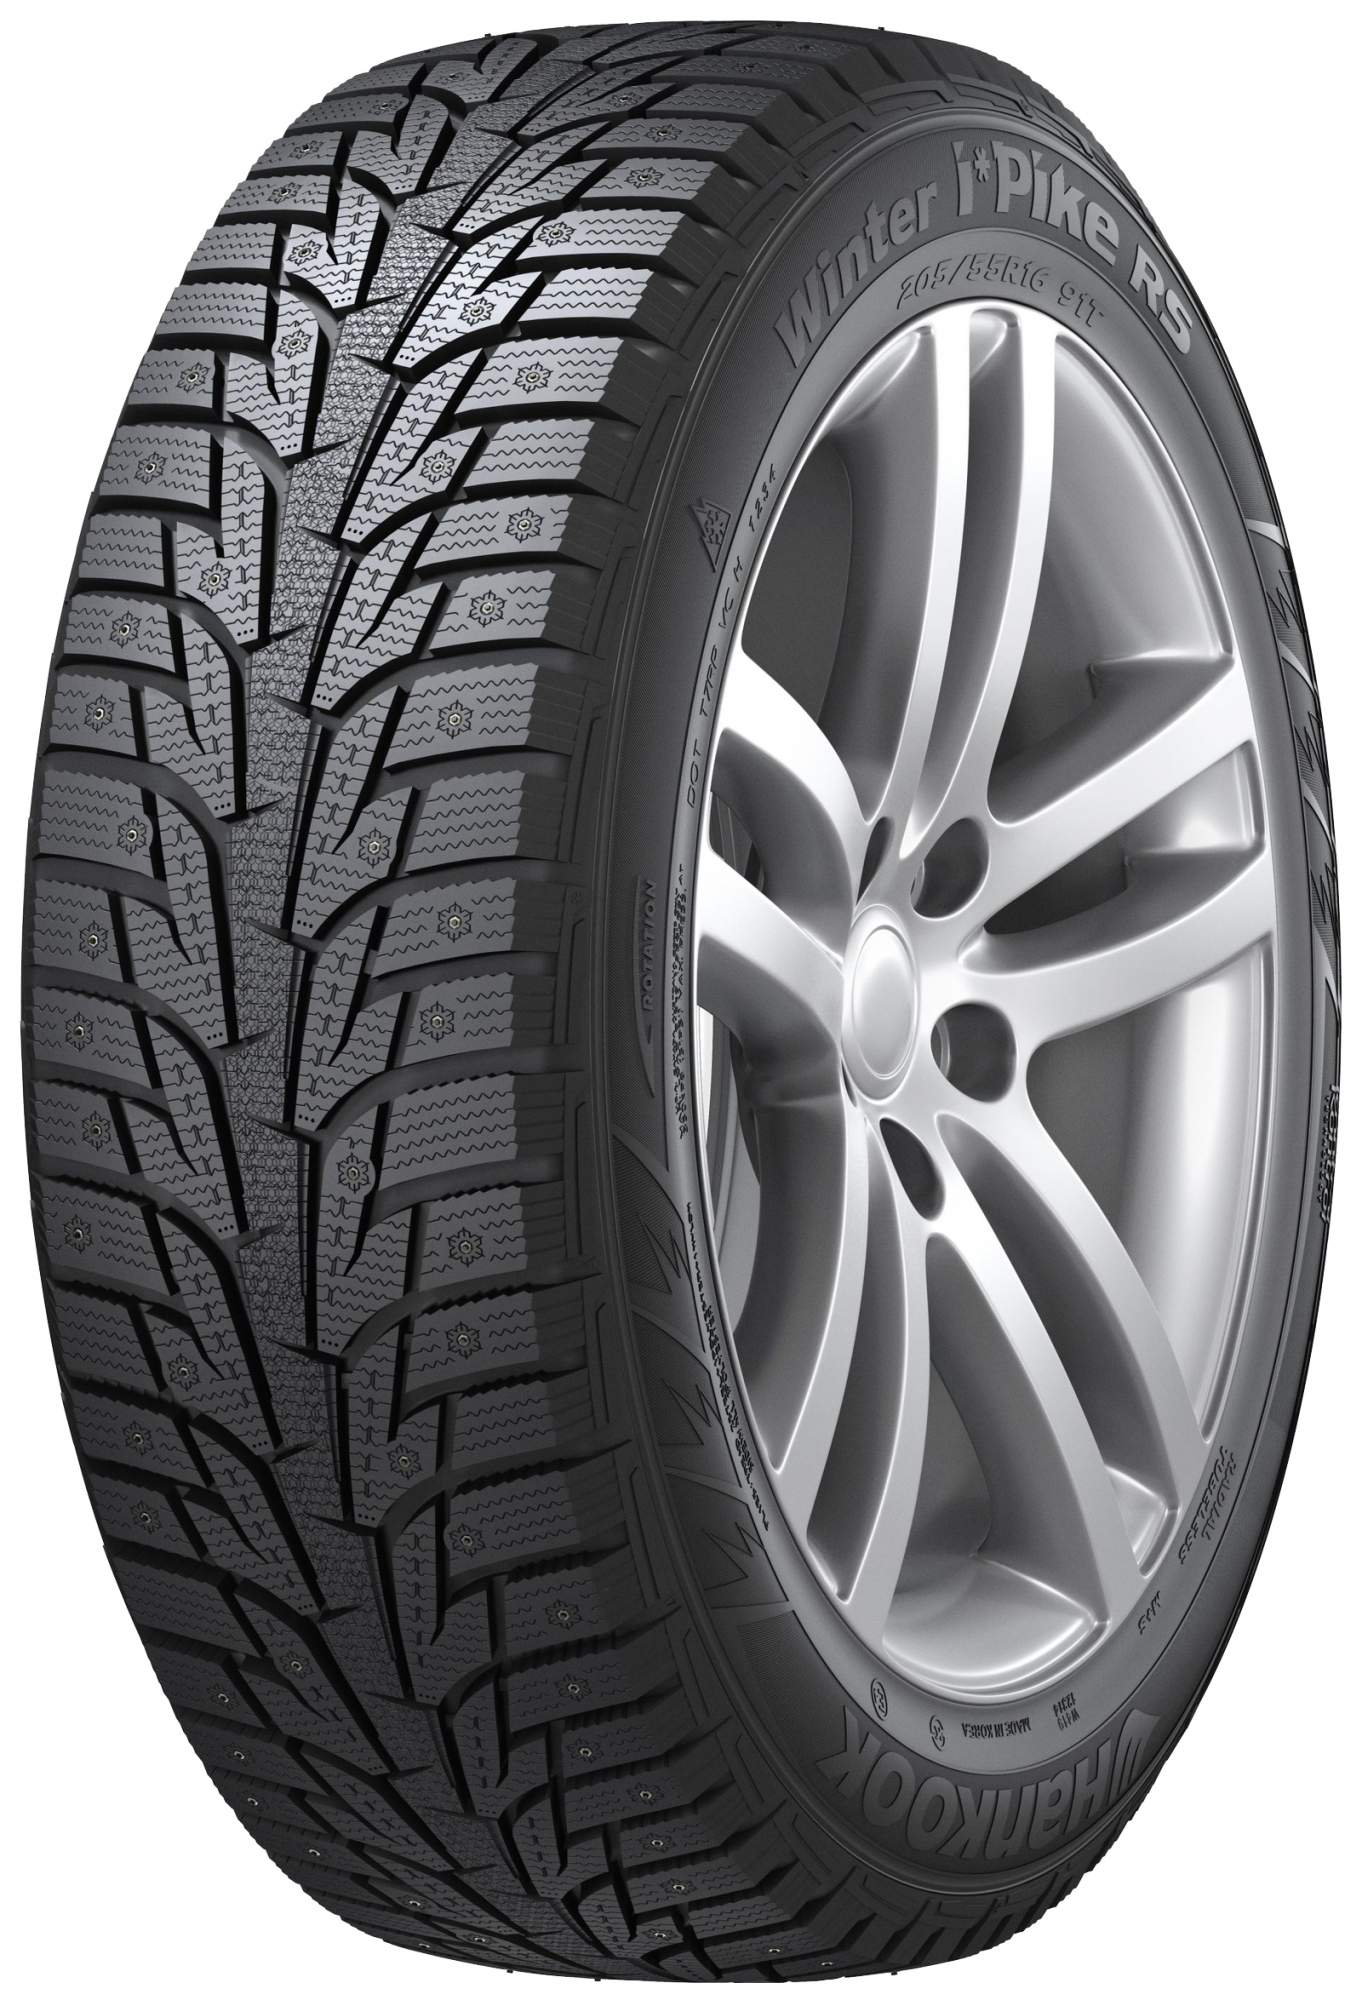 Автошина R17 245/45 Hankook i*Pike RS W419 99T XL (шип)